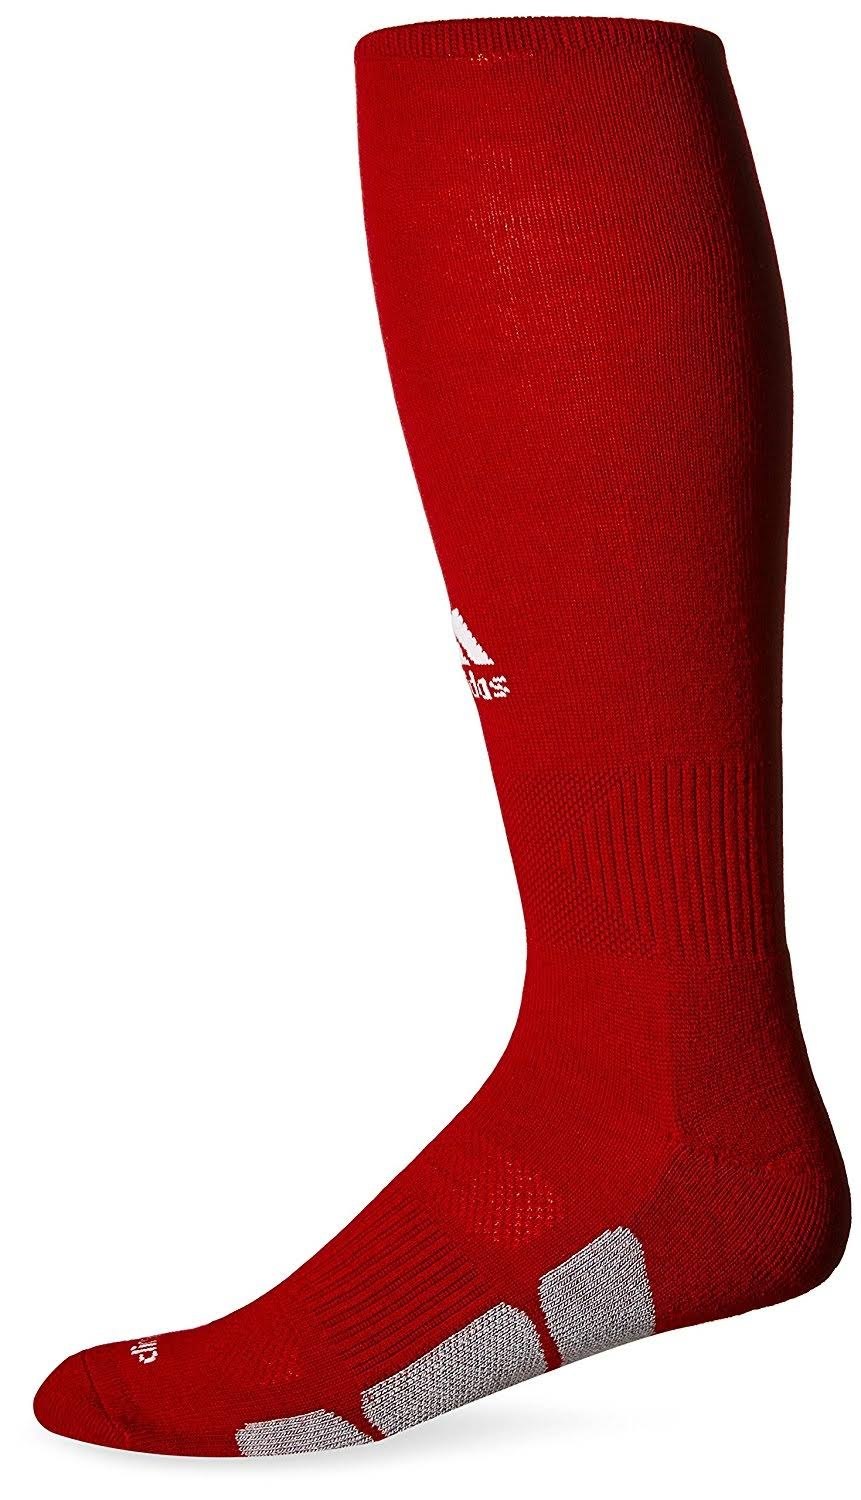 Adidas Utility Long Soccer Socks - Red, X-Small